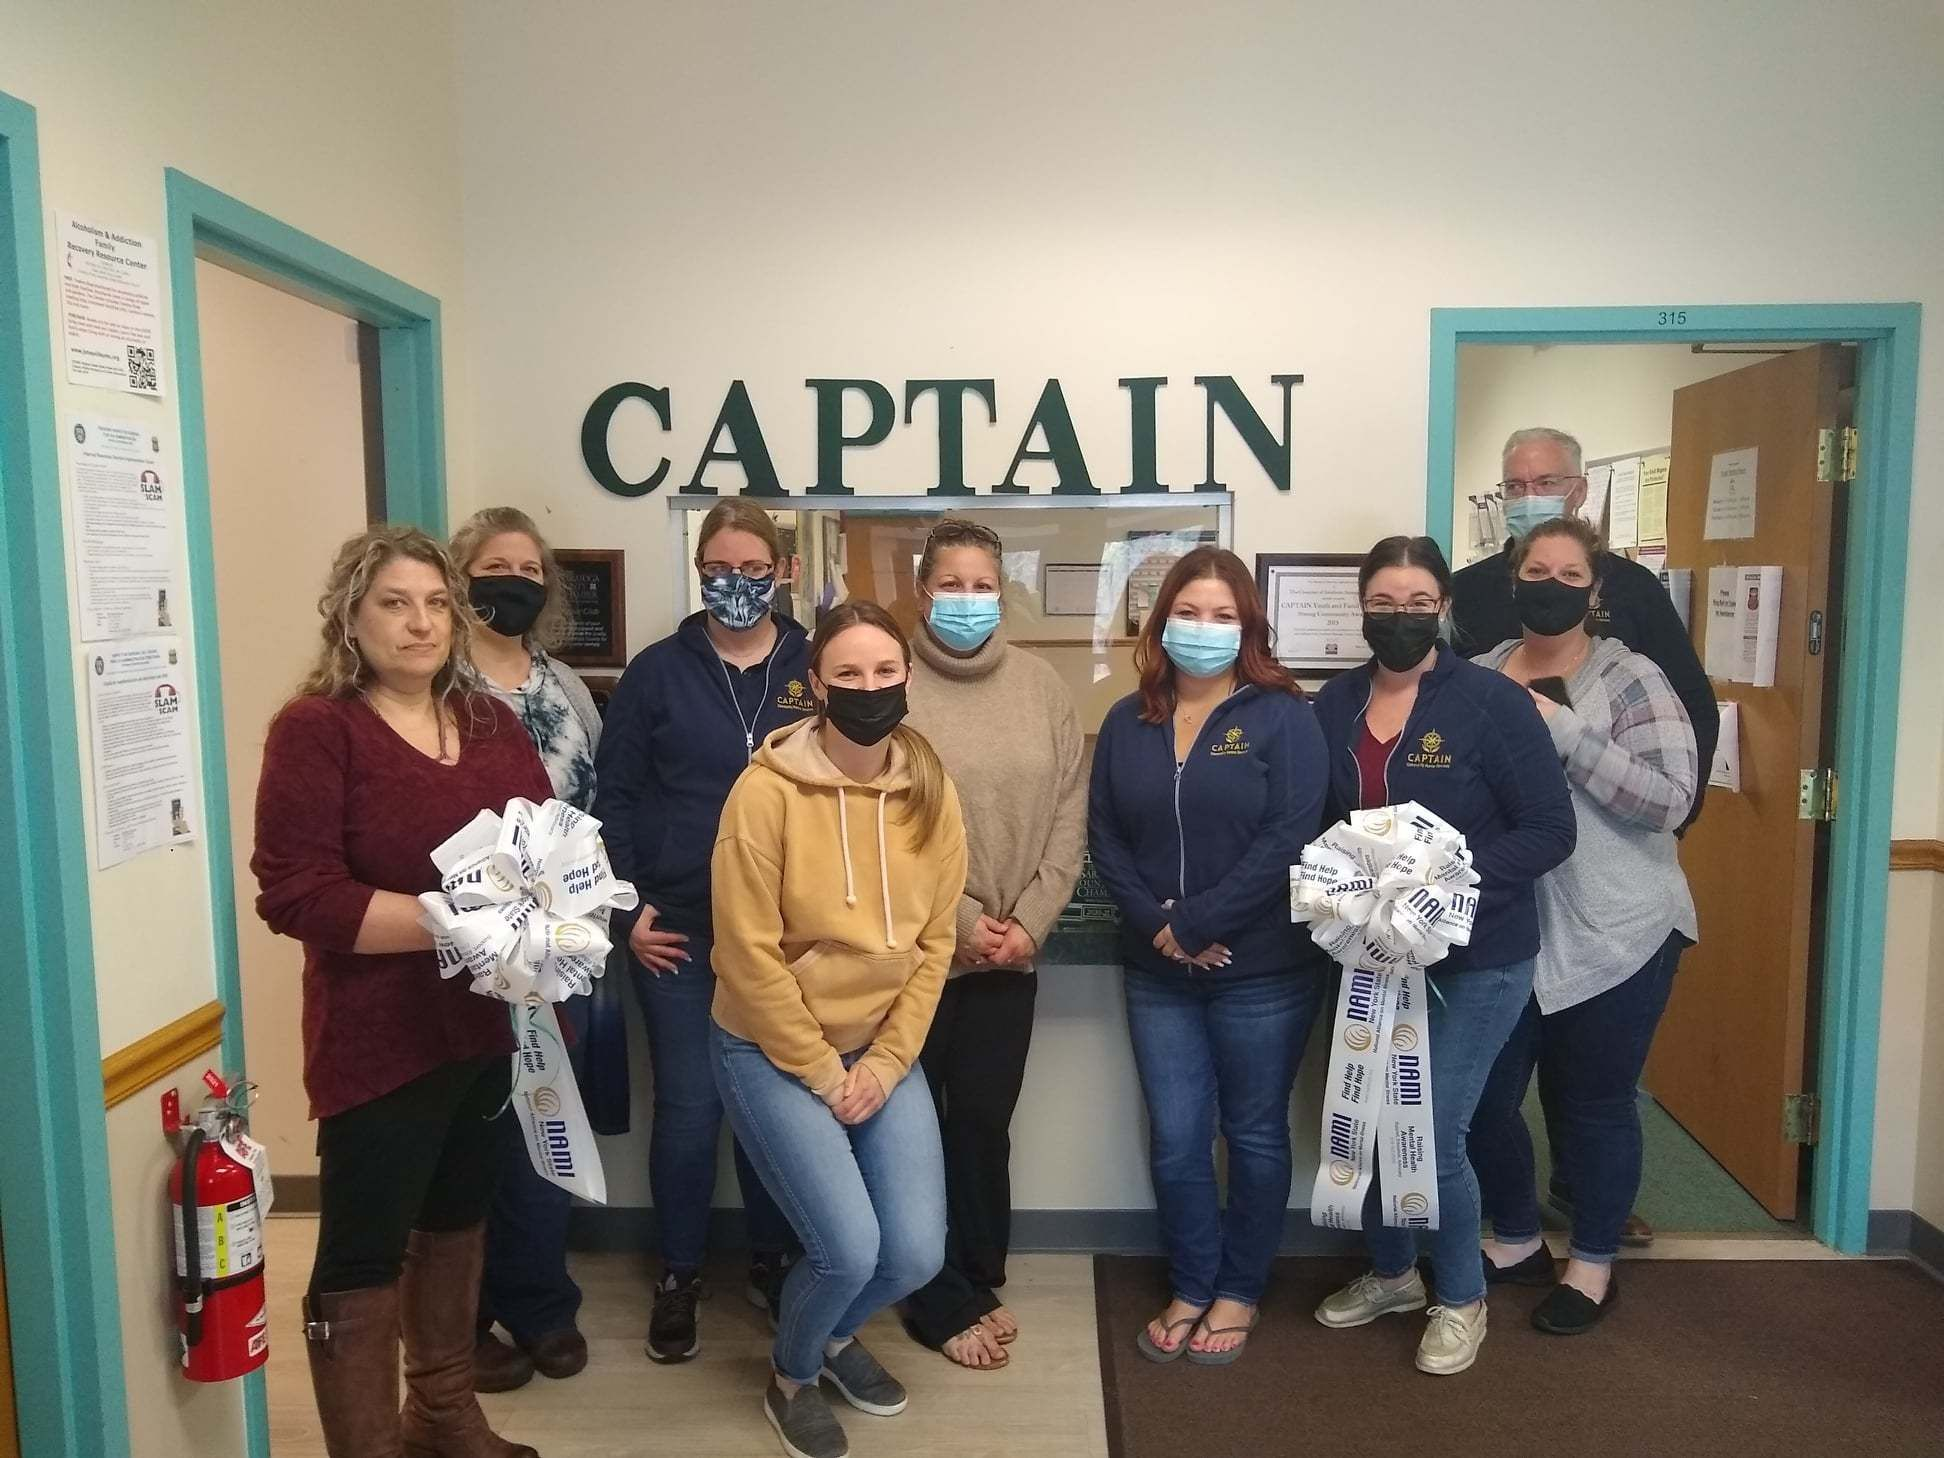 Staff at the Clifton Park office posing with ribbons from NAMI New York State which will be displayed in support of NAMI's mission and having a mentally healthy workplace!